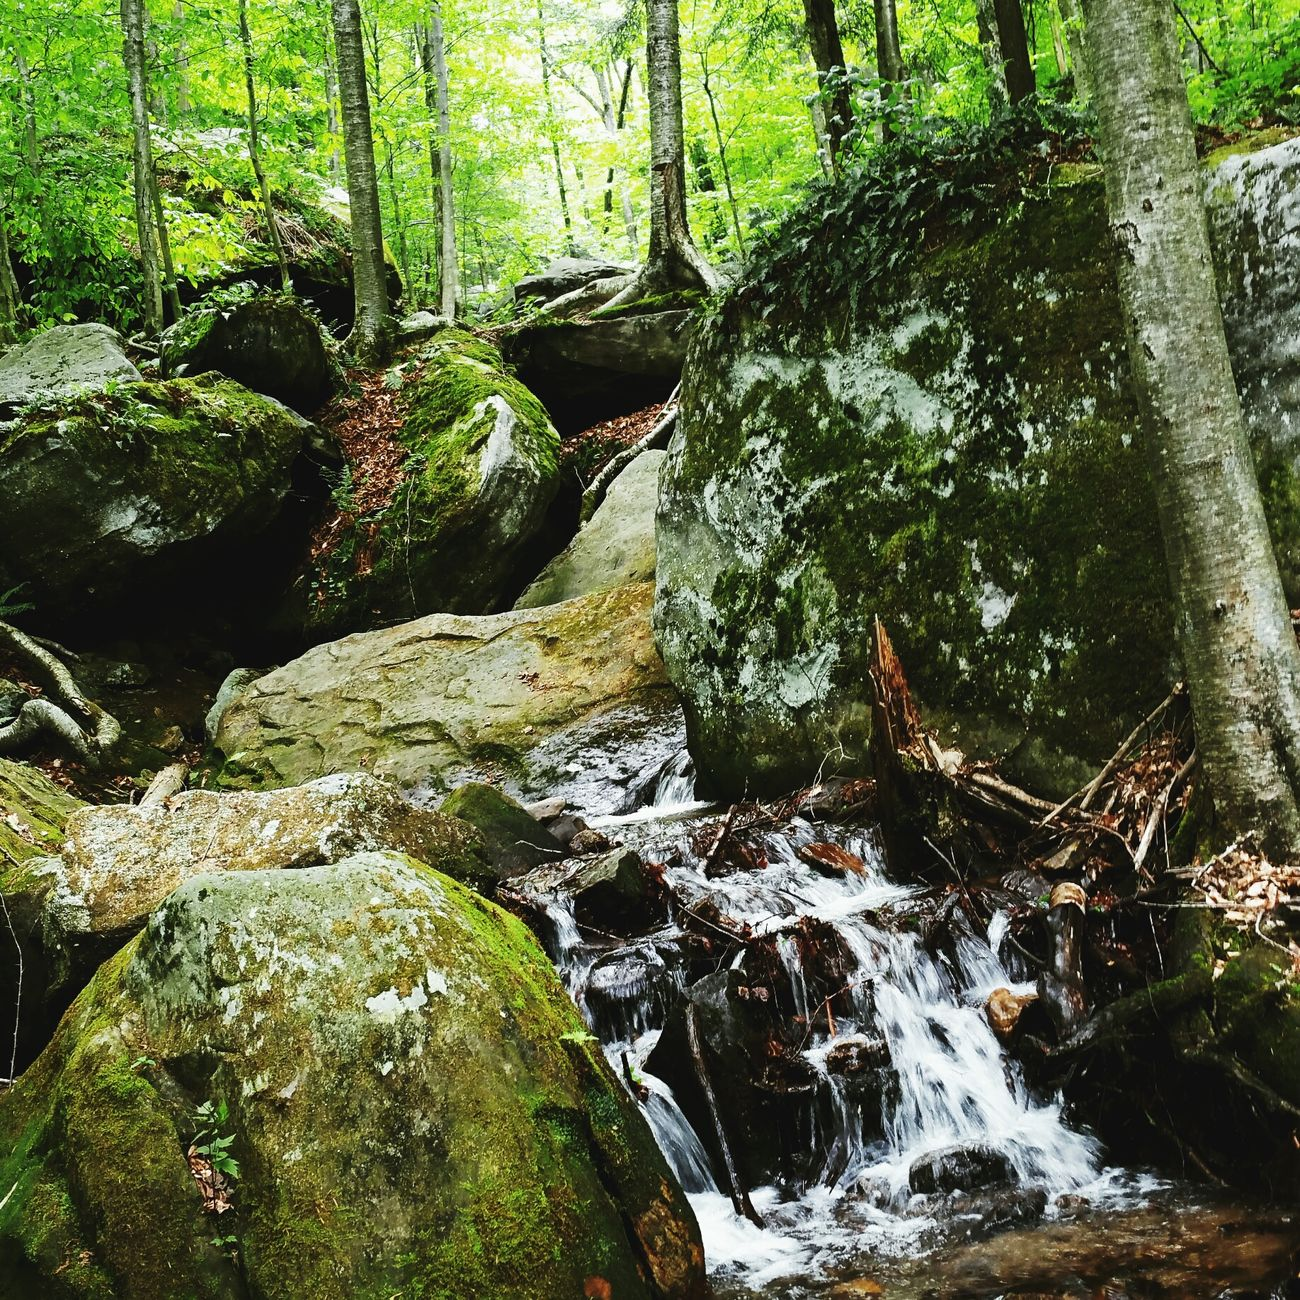 Harpersferry Hanging Out Hiking❤ Relaxing Green Waterfall Love Hello World